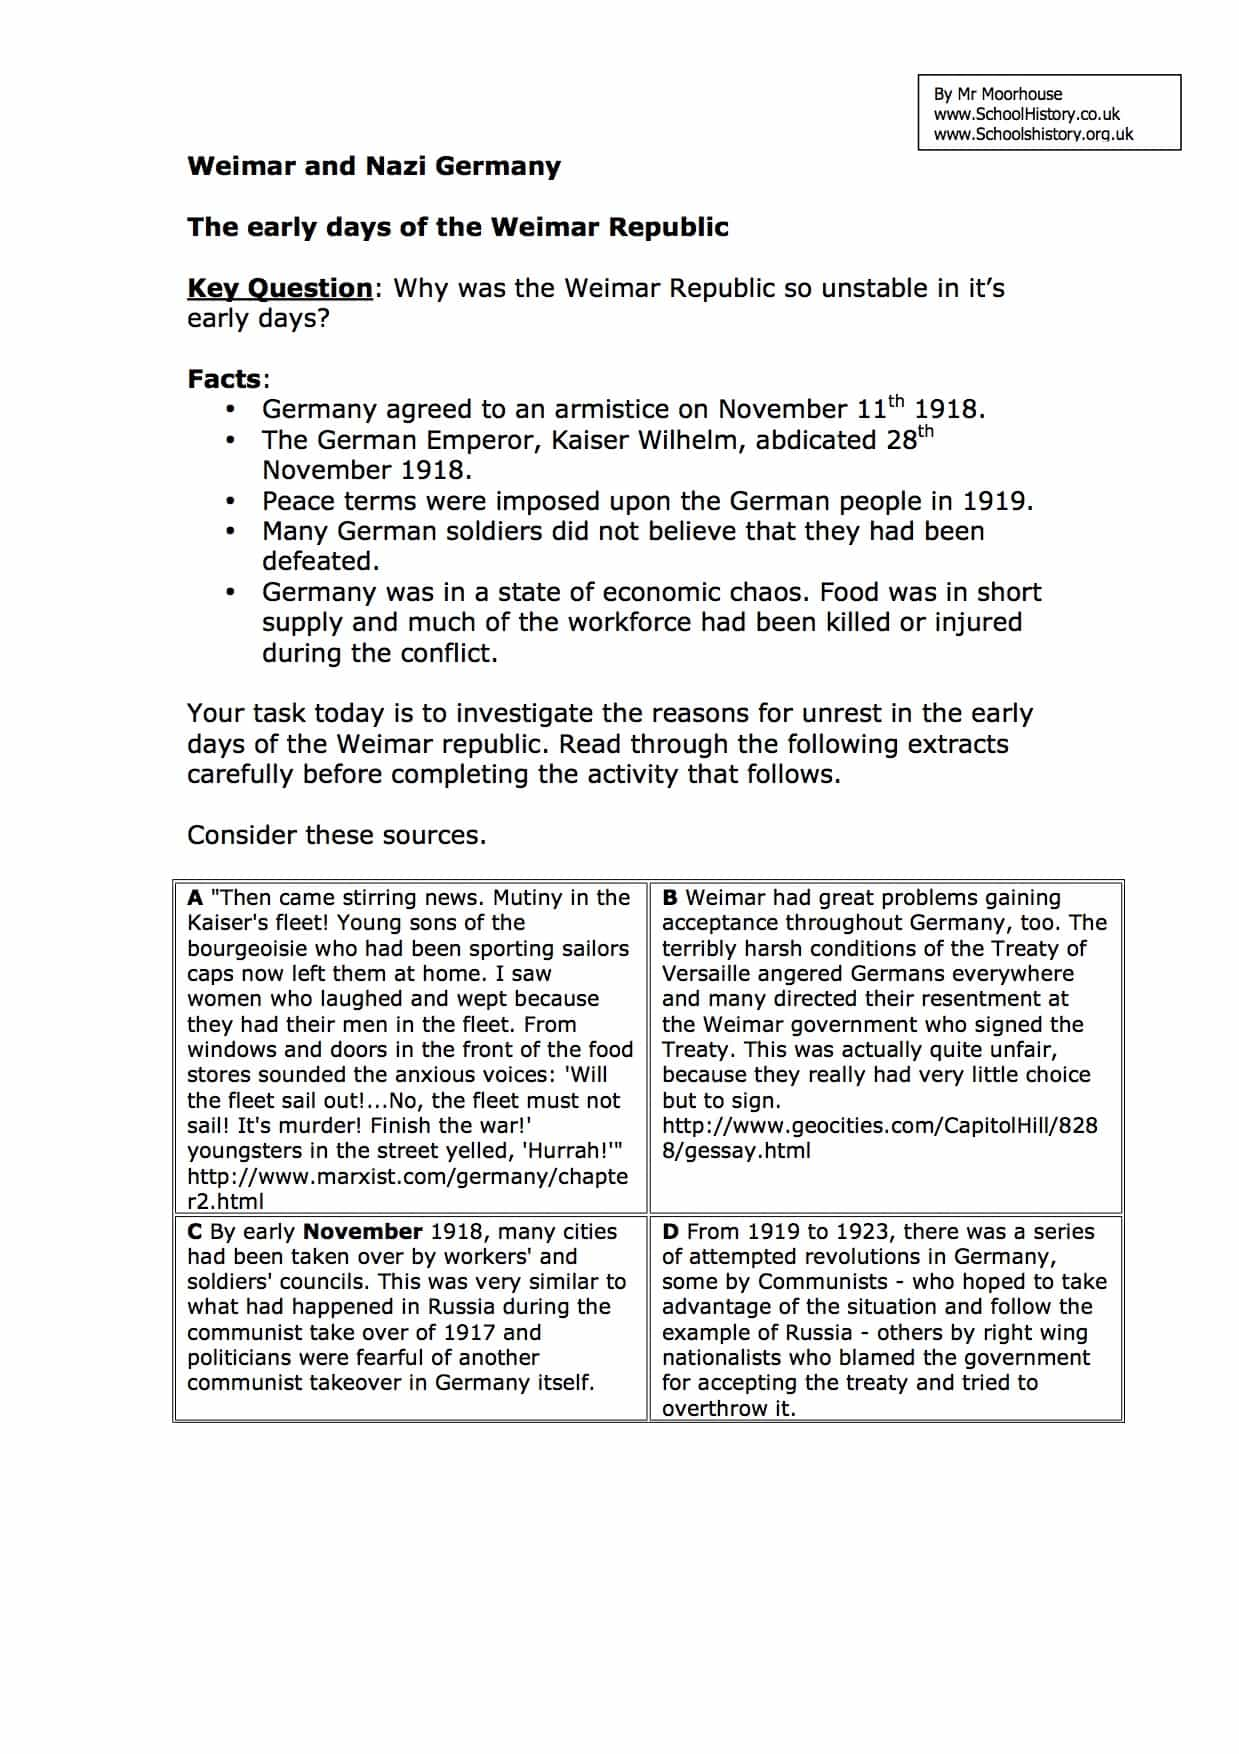 Early Days Of The Weimar Republic Worksheet